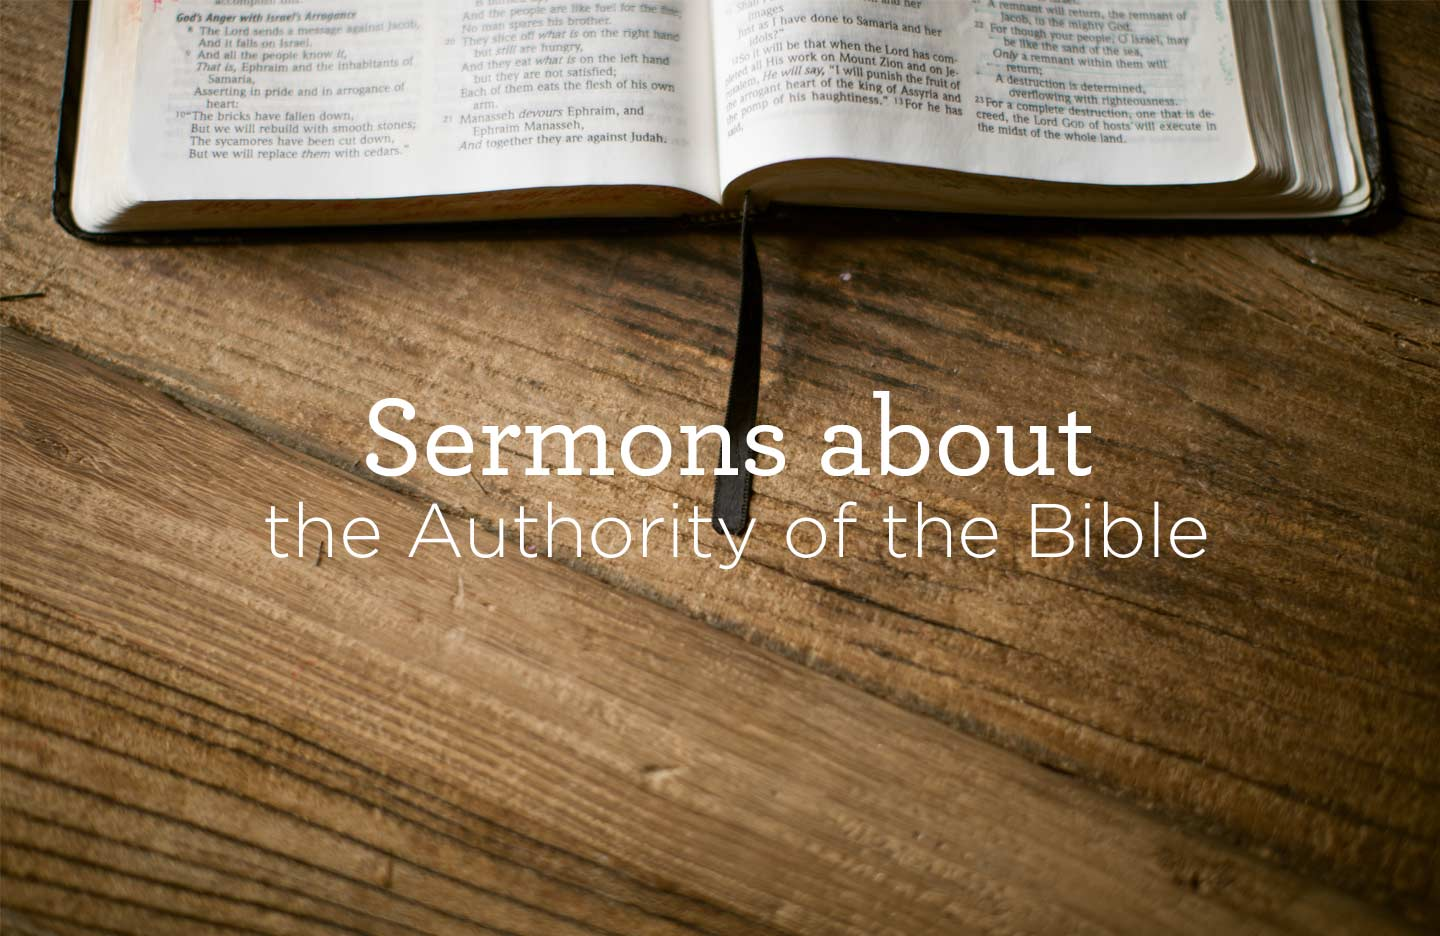 Sermons on the Authority of the Bible